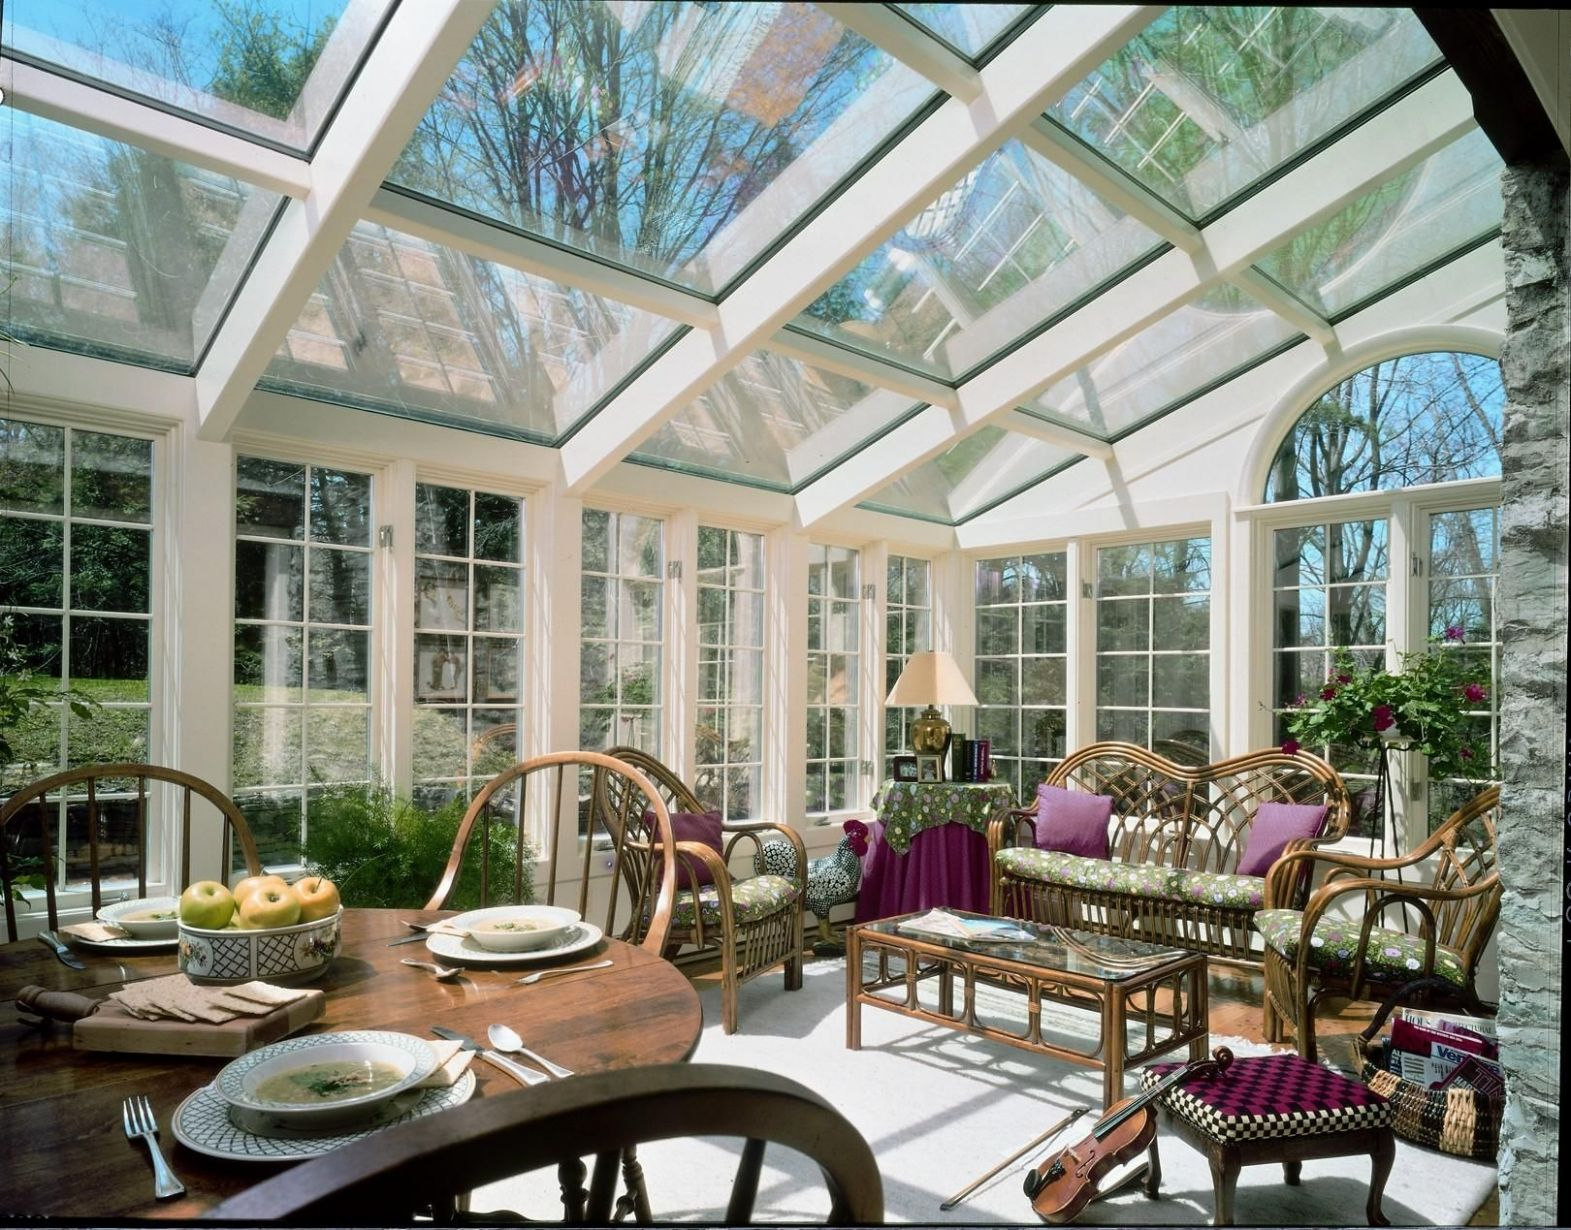 Patio Room Addition | Sunroom designs, Sunroom decorating, Small ..